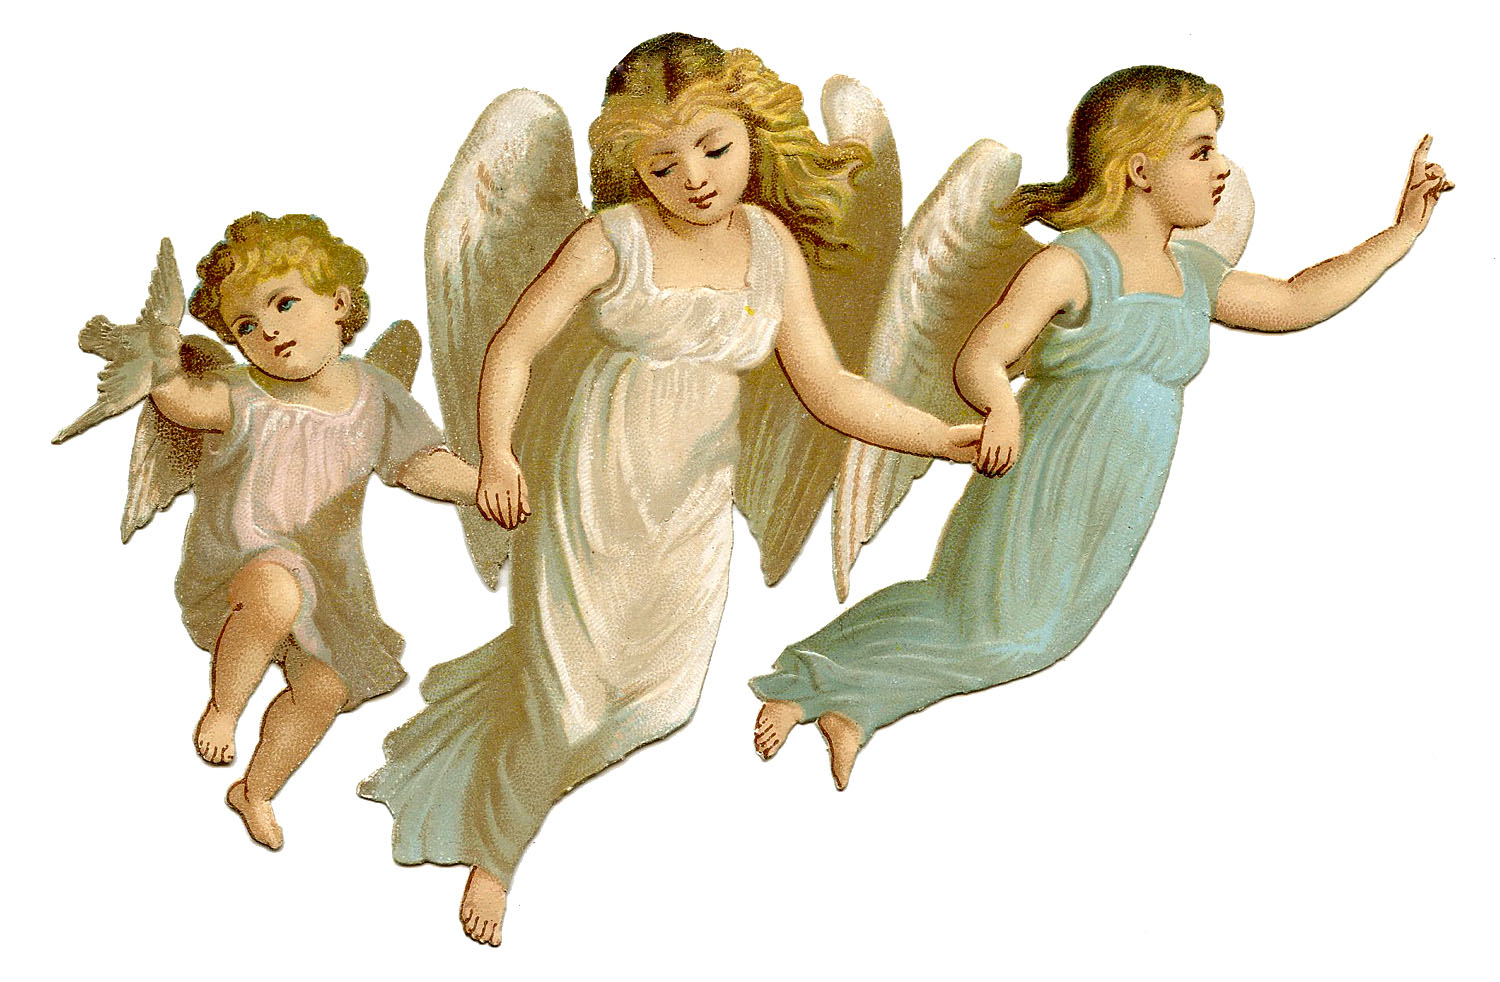 3 Baby Angels Picture - HD Wallpapers - Little Angel PNG HD